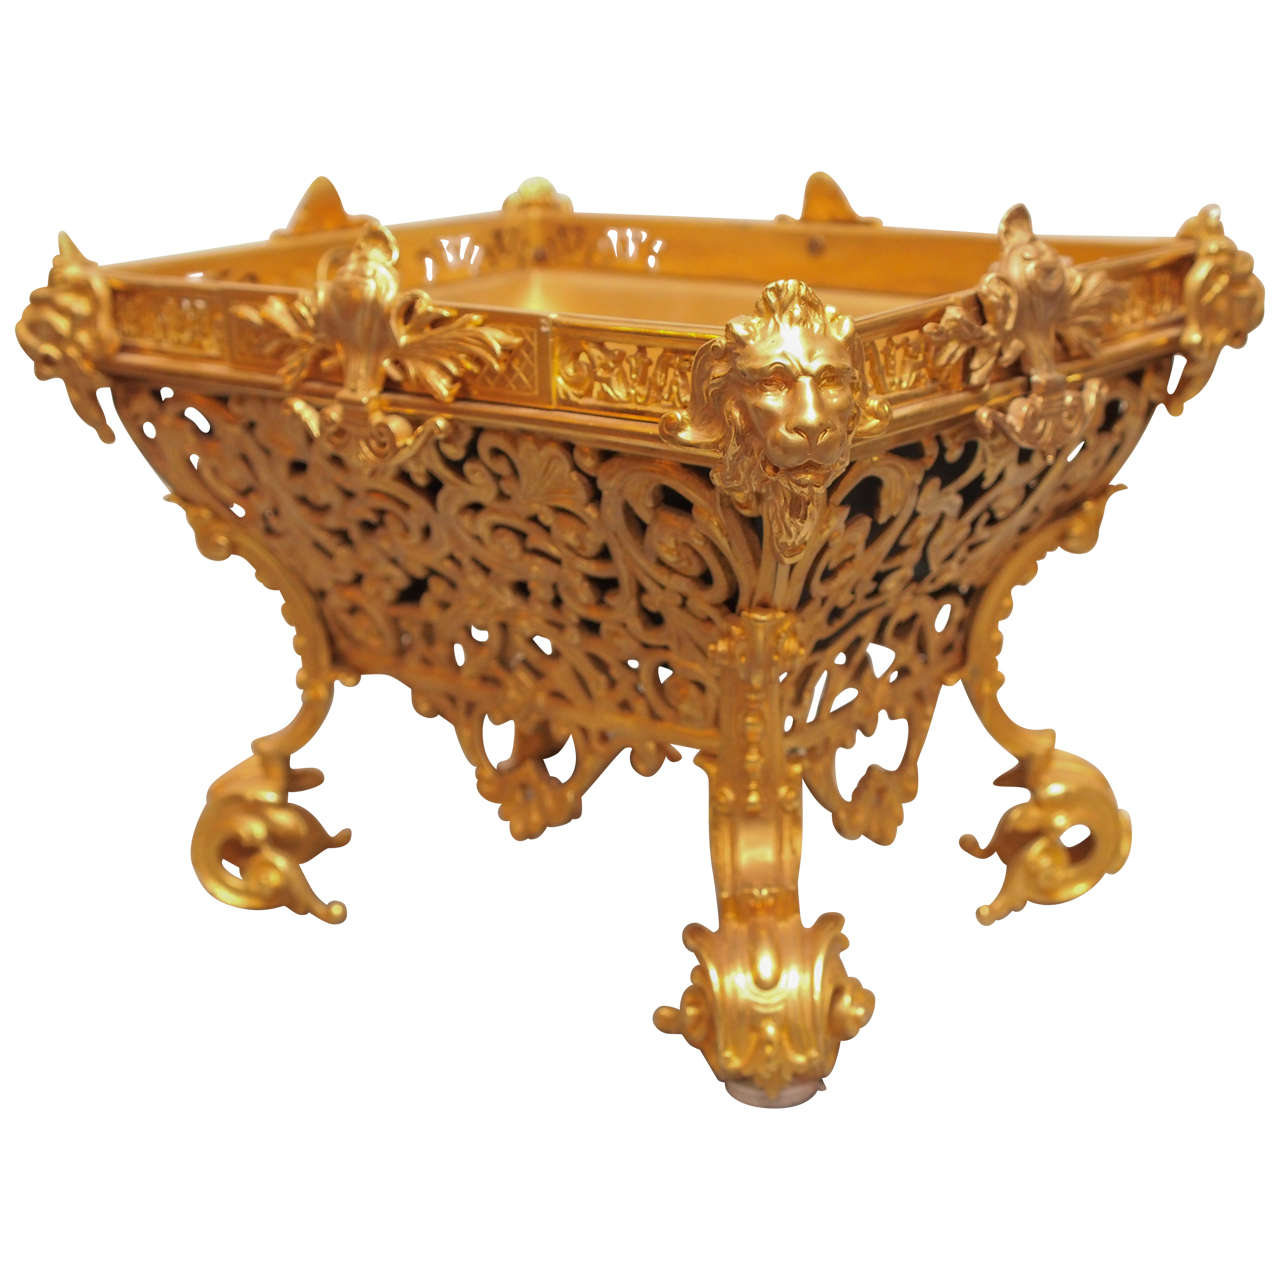 French napoleon iii gilt bronze jardiniere at 1stdibs for Jardiniere napoleon 3